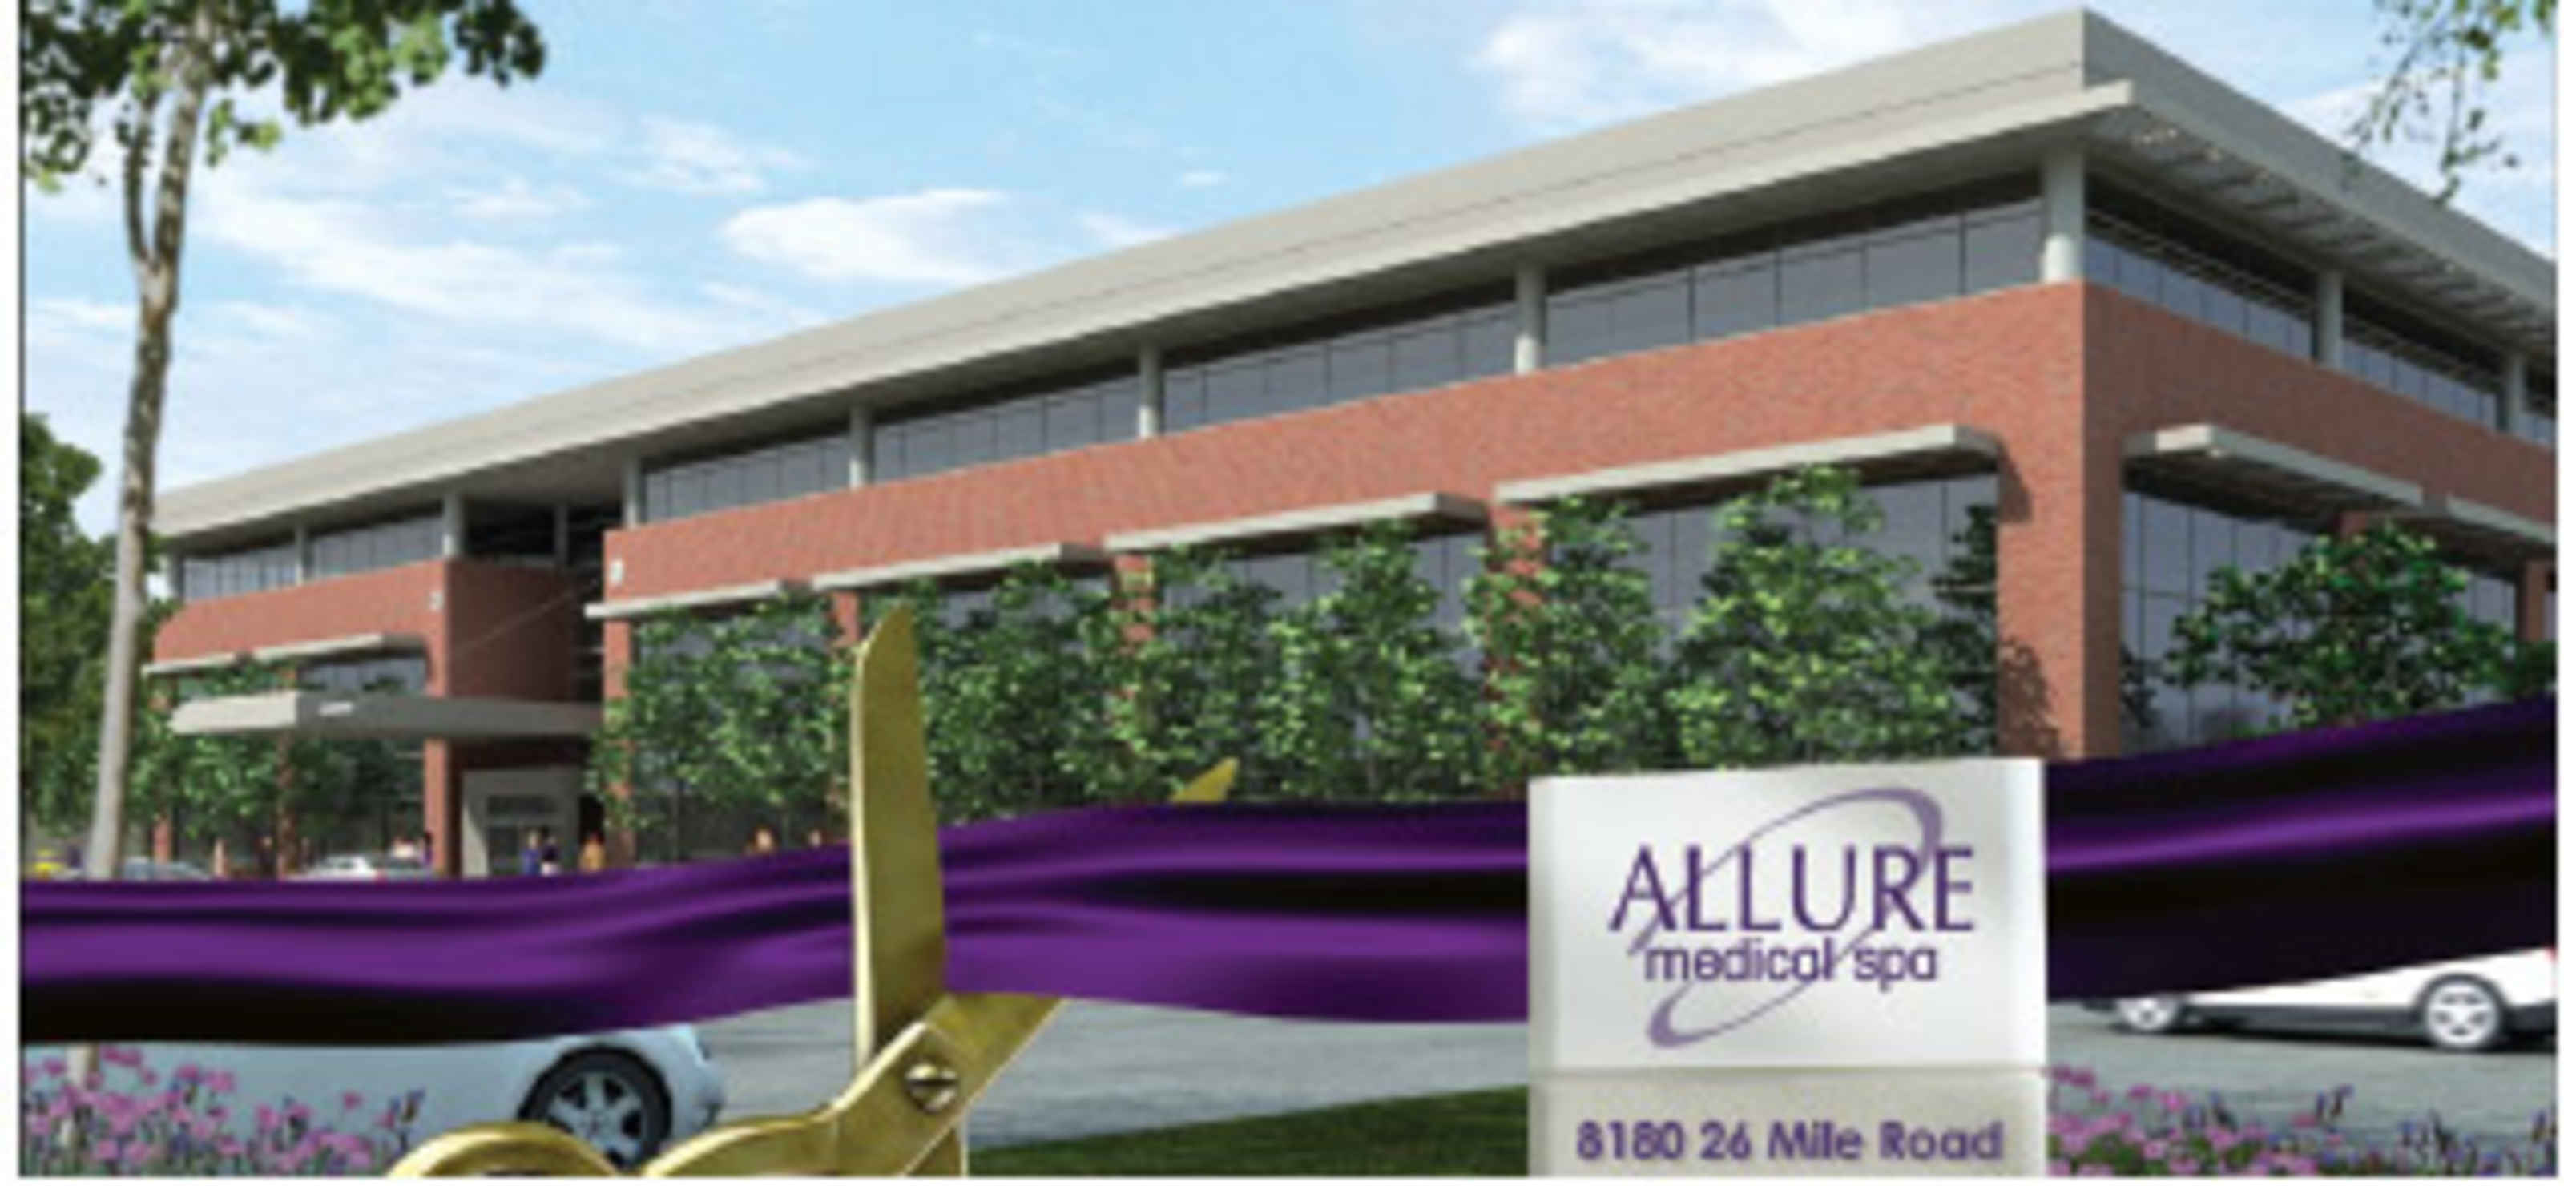 Allure Medical Spa Stem Cell Shelby Charter Township Gcr